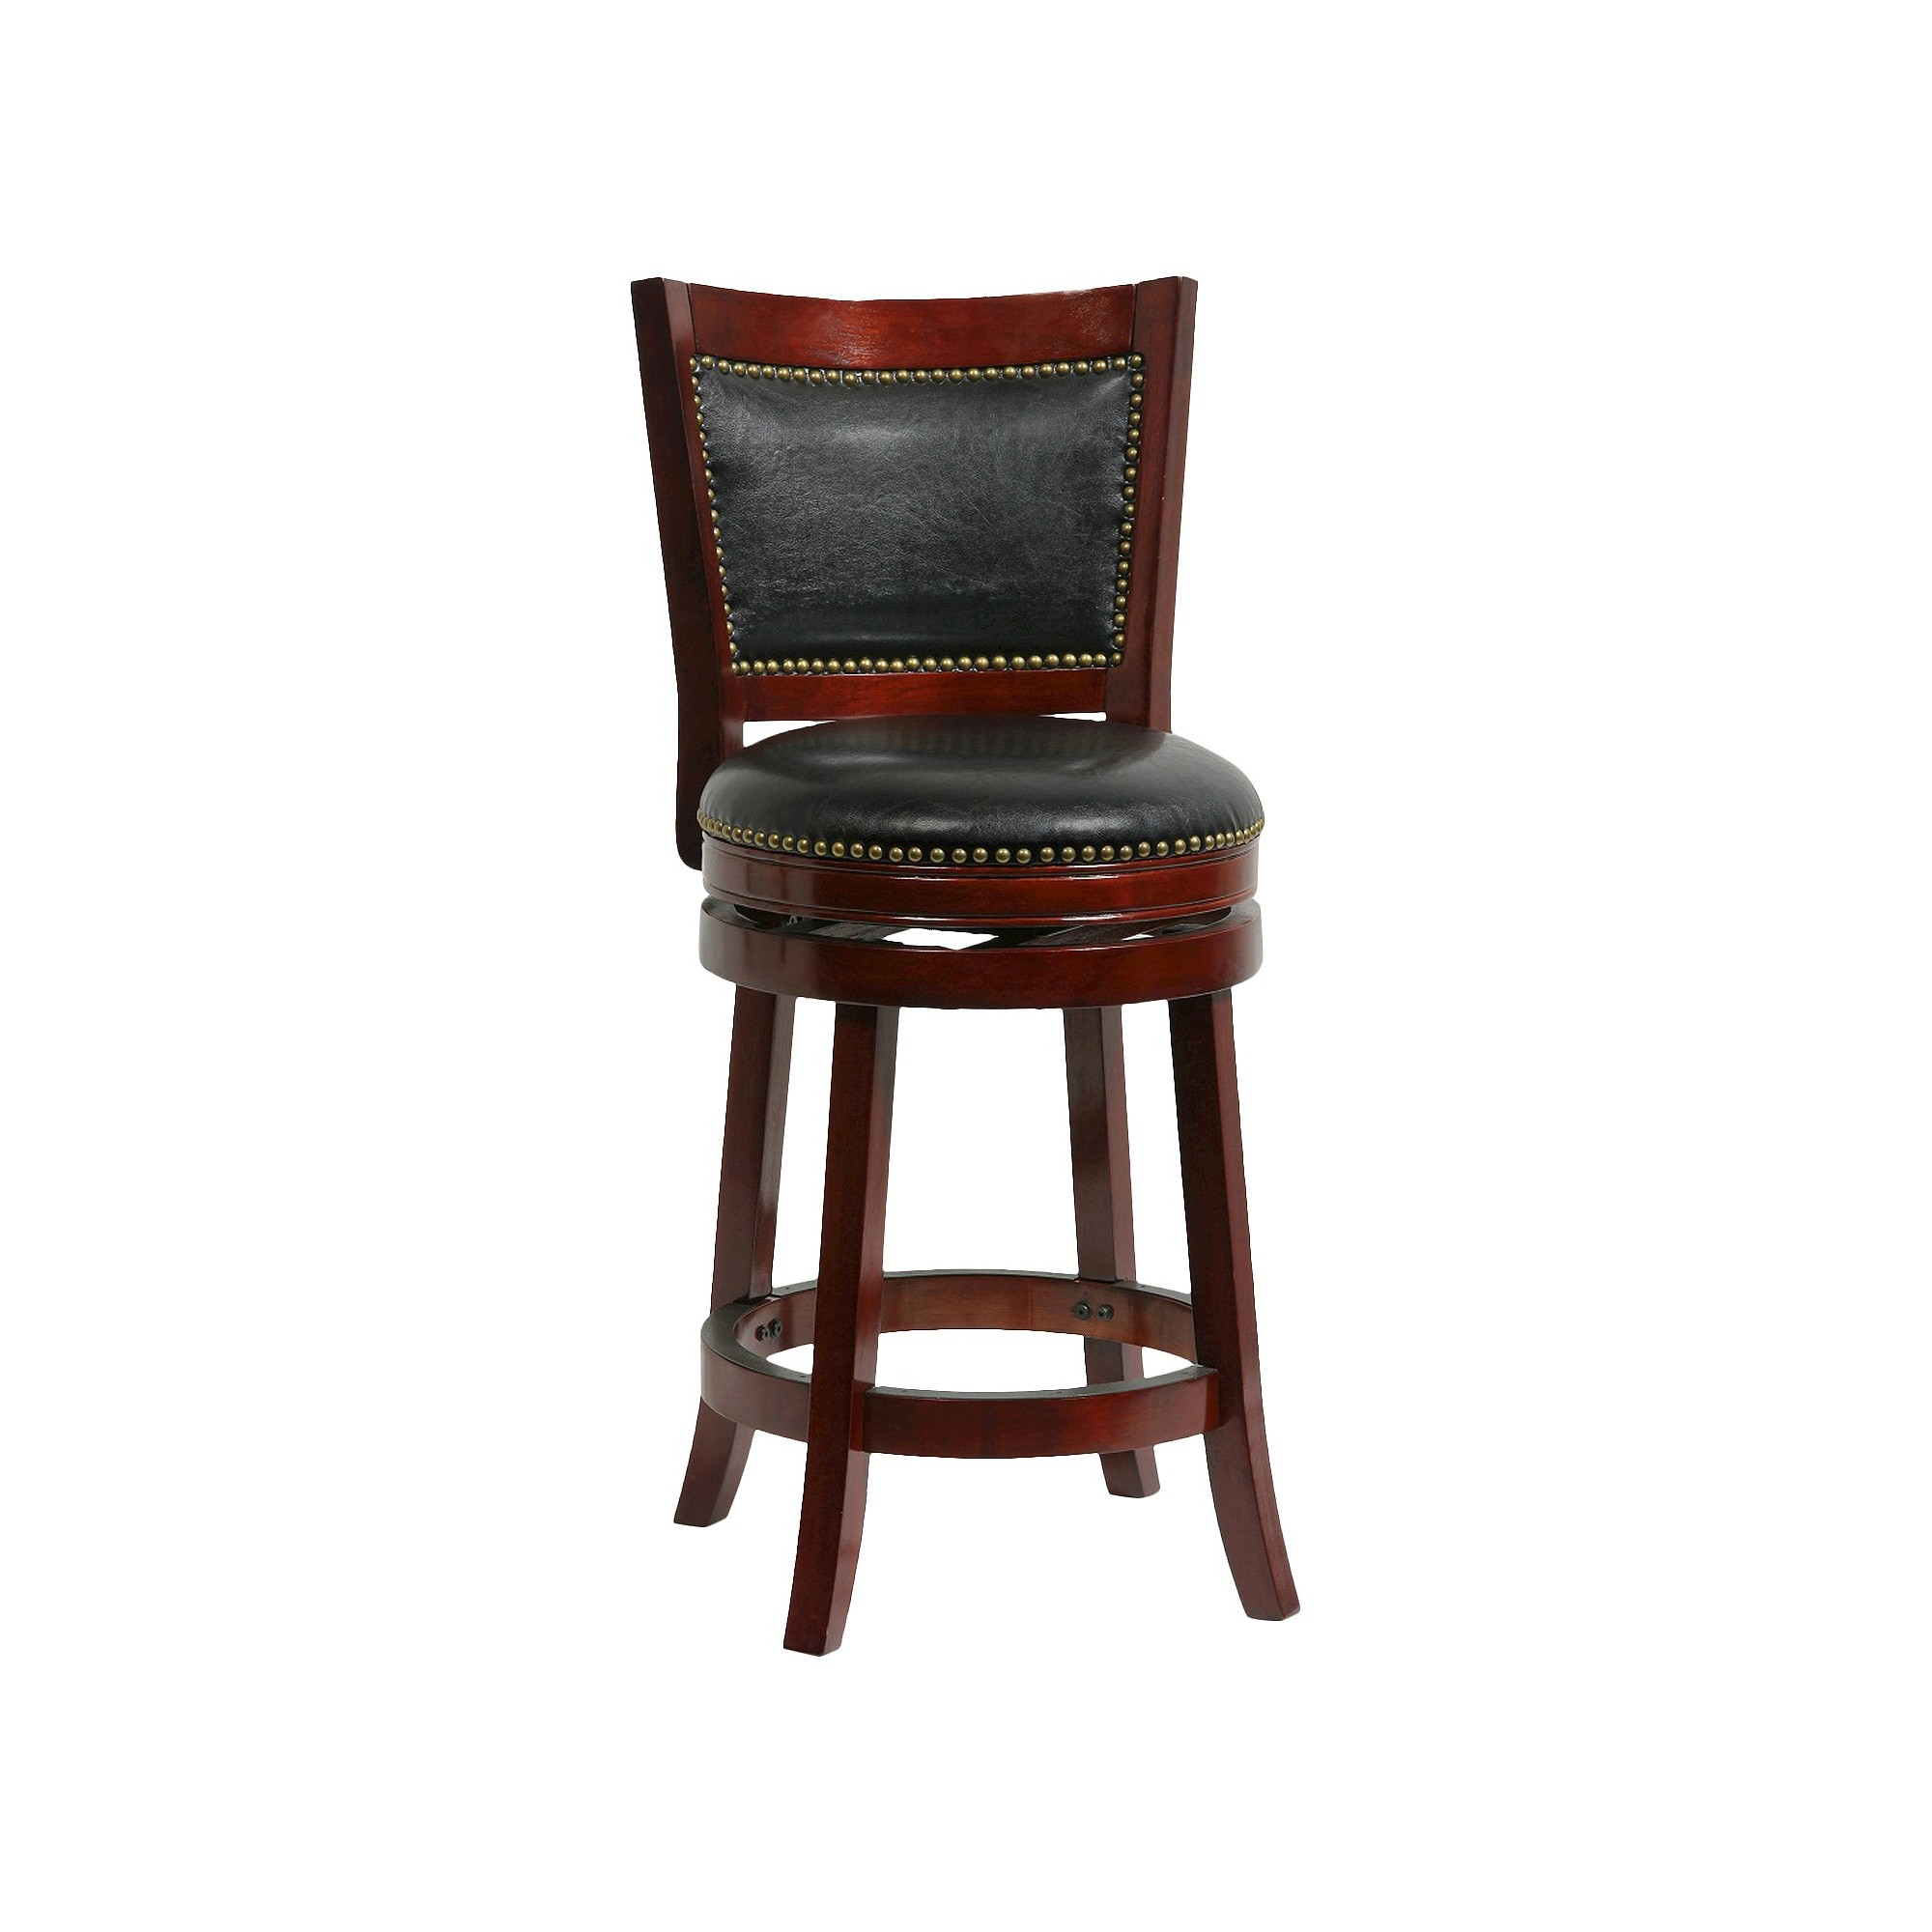 Admirable Boraam Bristol Swivel 24 Counter Stool Hardwood Cherry Bar Uwap Interior Chair Design Uwaporg